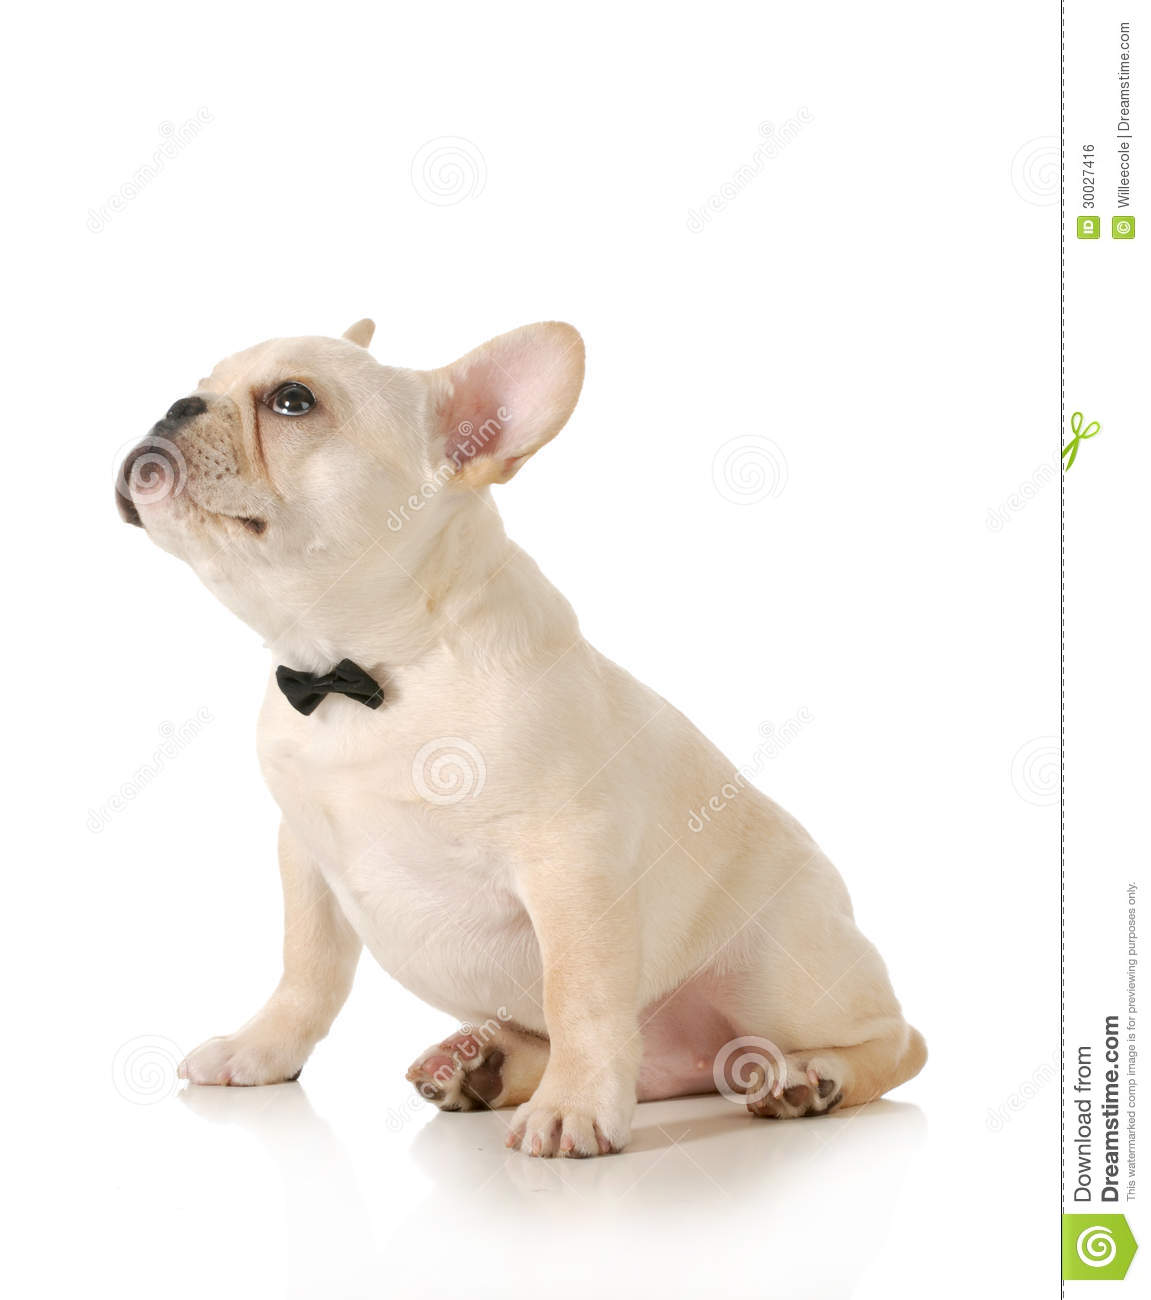 Amazing Bulldog Black Adorable Dog - cute-puppy-french-bulldog-puppy-wearing-black-bowtie-looking-up-sitting-white-background-30027416  Perfect Image Reference_441871  .jpg